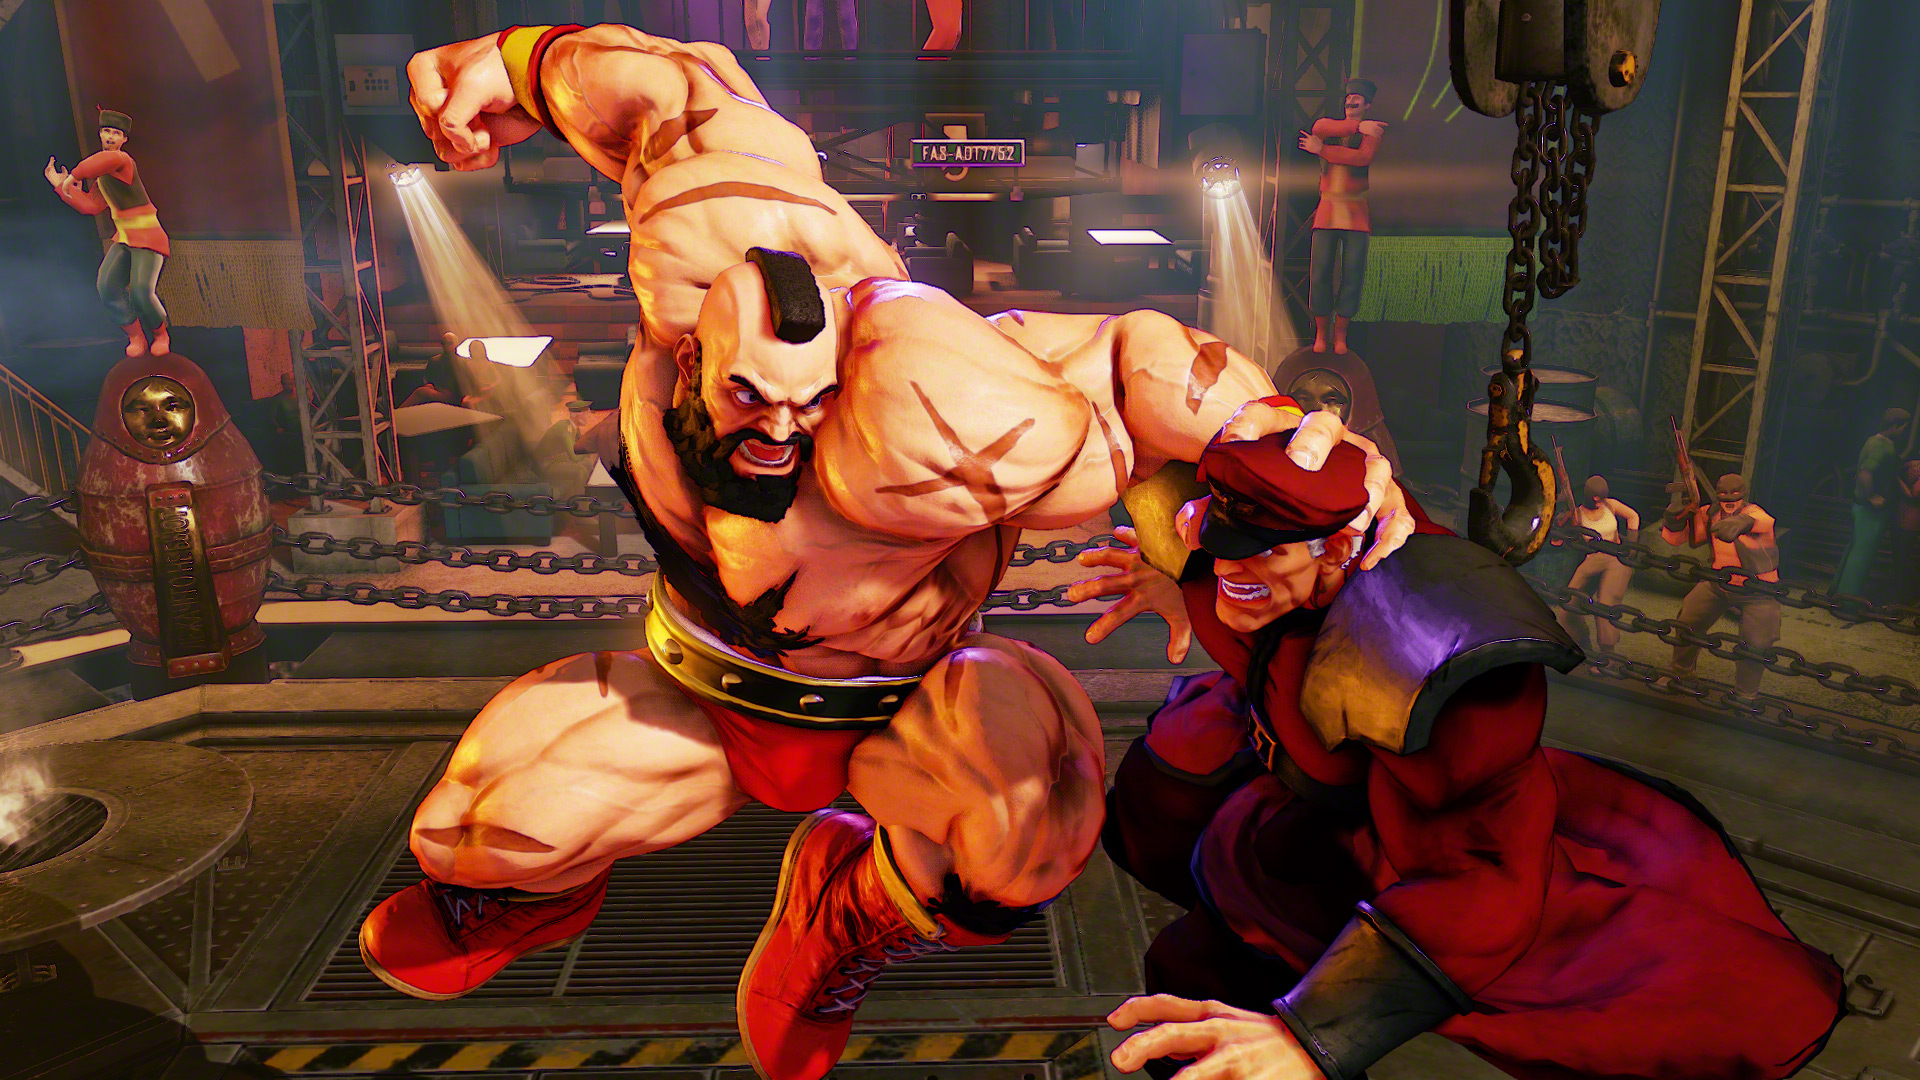 Zangief is coming back for Street Fighter 5 | Polygon